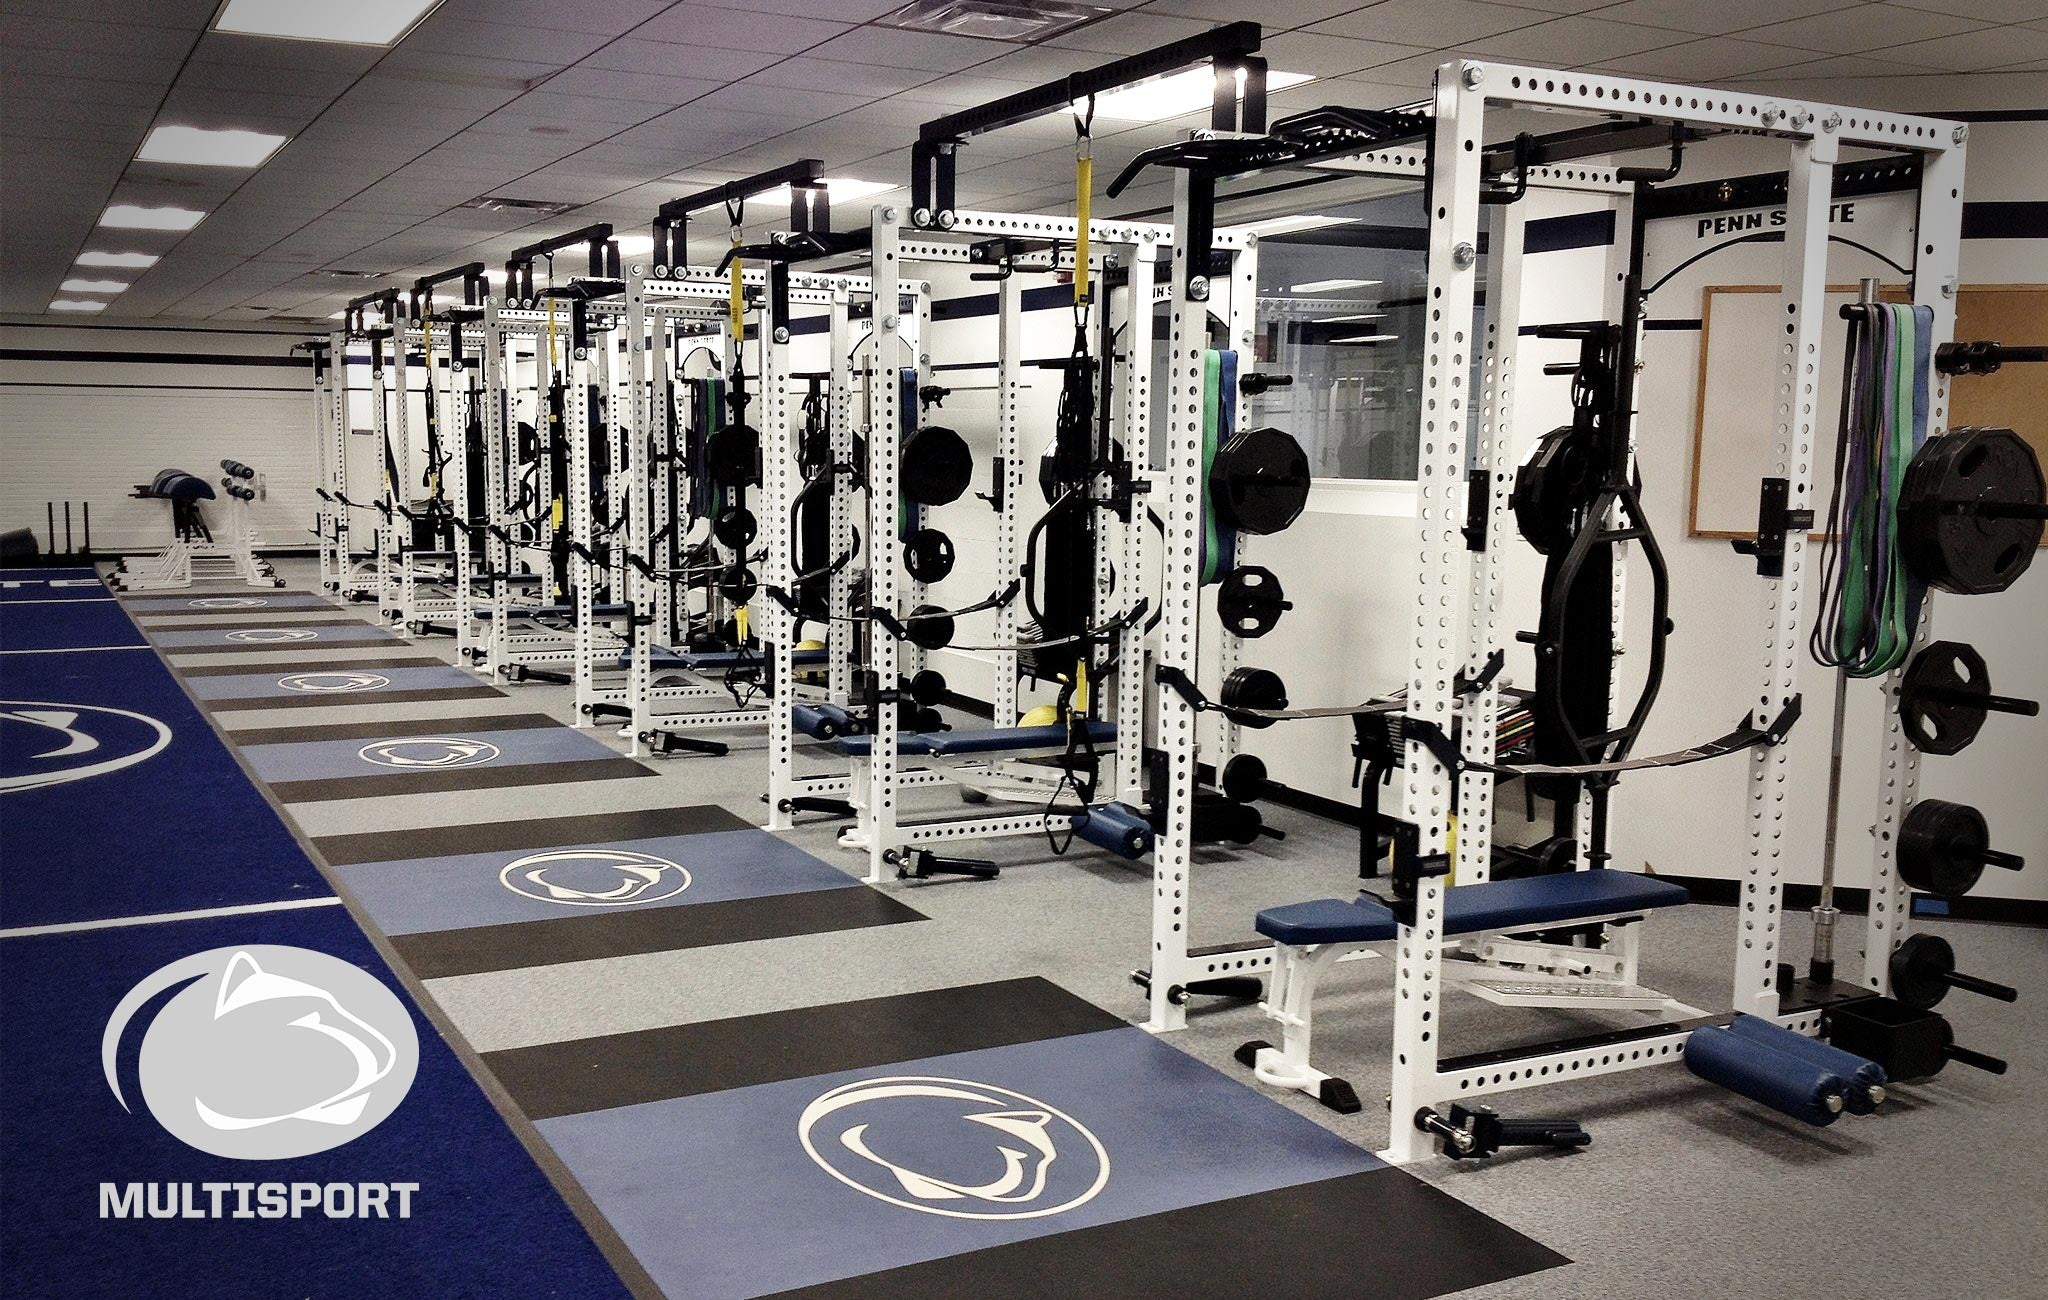 Penn State olympic Sorinex strength and conditioning facility